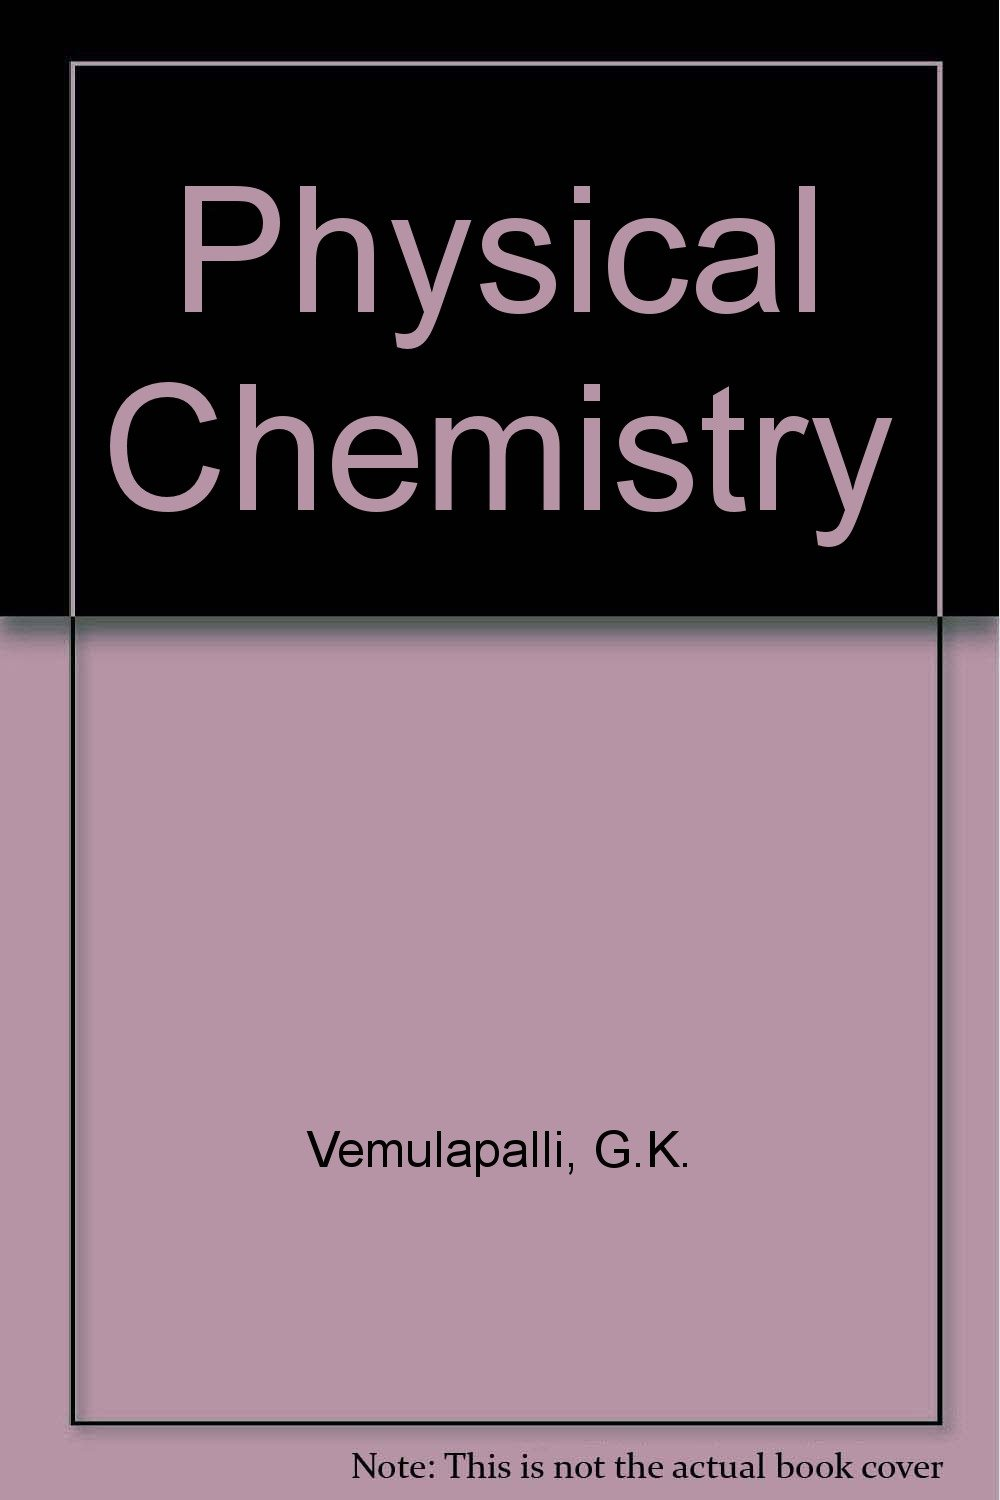 Buy Physical Chemistry Book Online at Low Prices in India | Physical  Chemistry Reviews & Ratings - Amazon.in